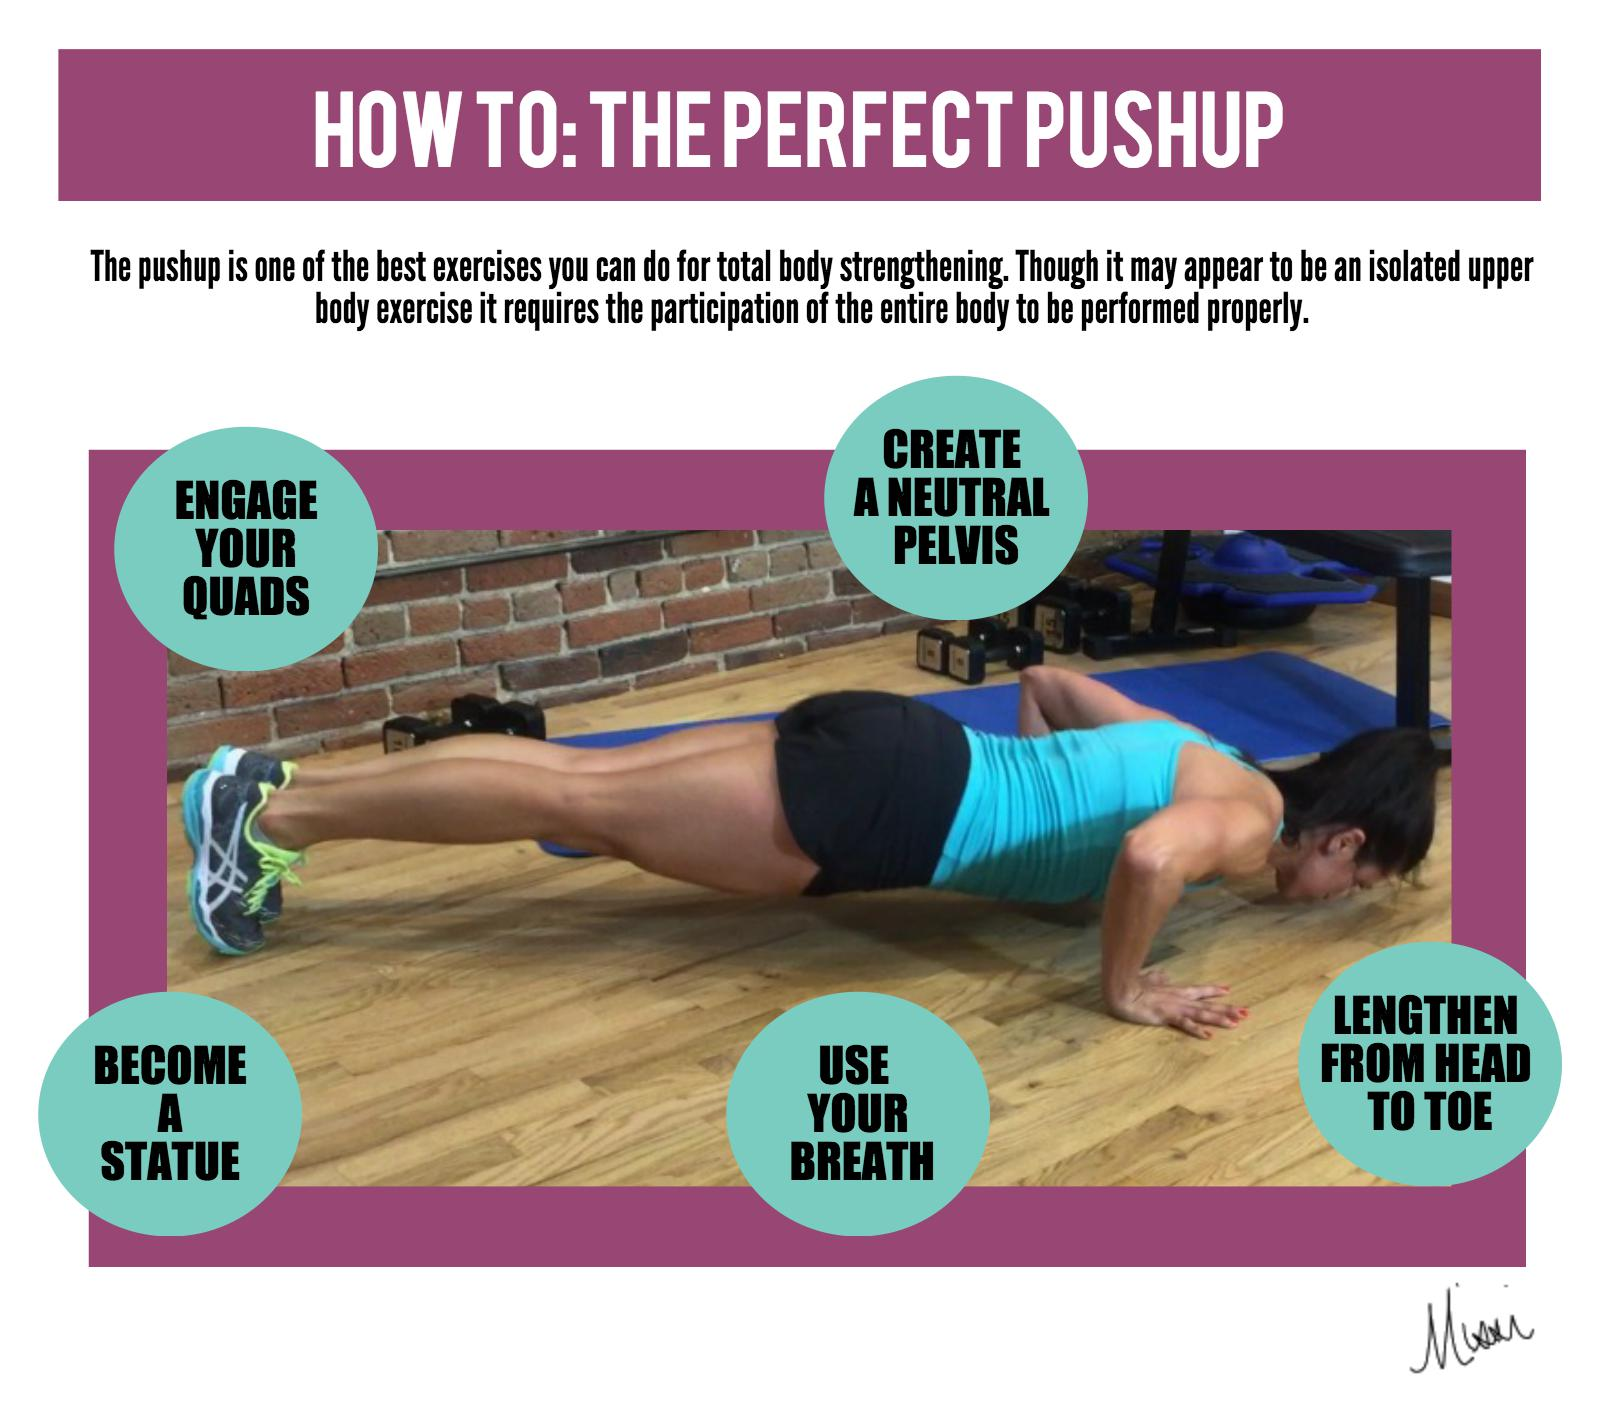 Breakdown of the Perfect Pushup